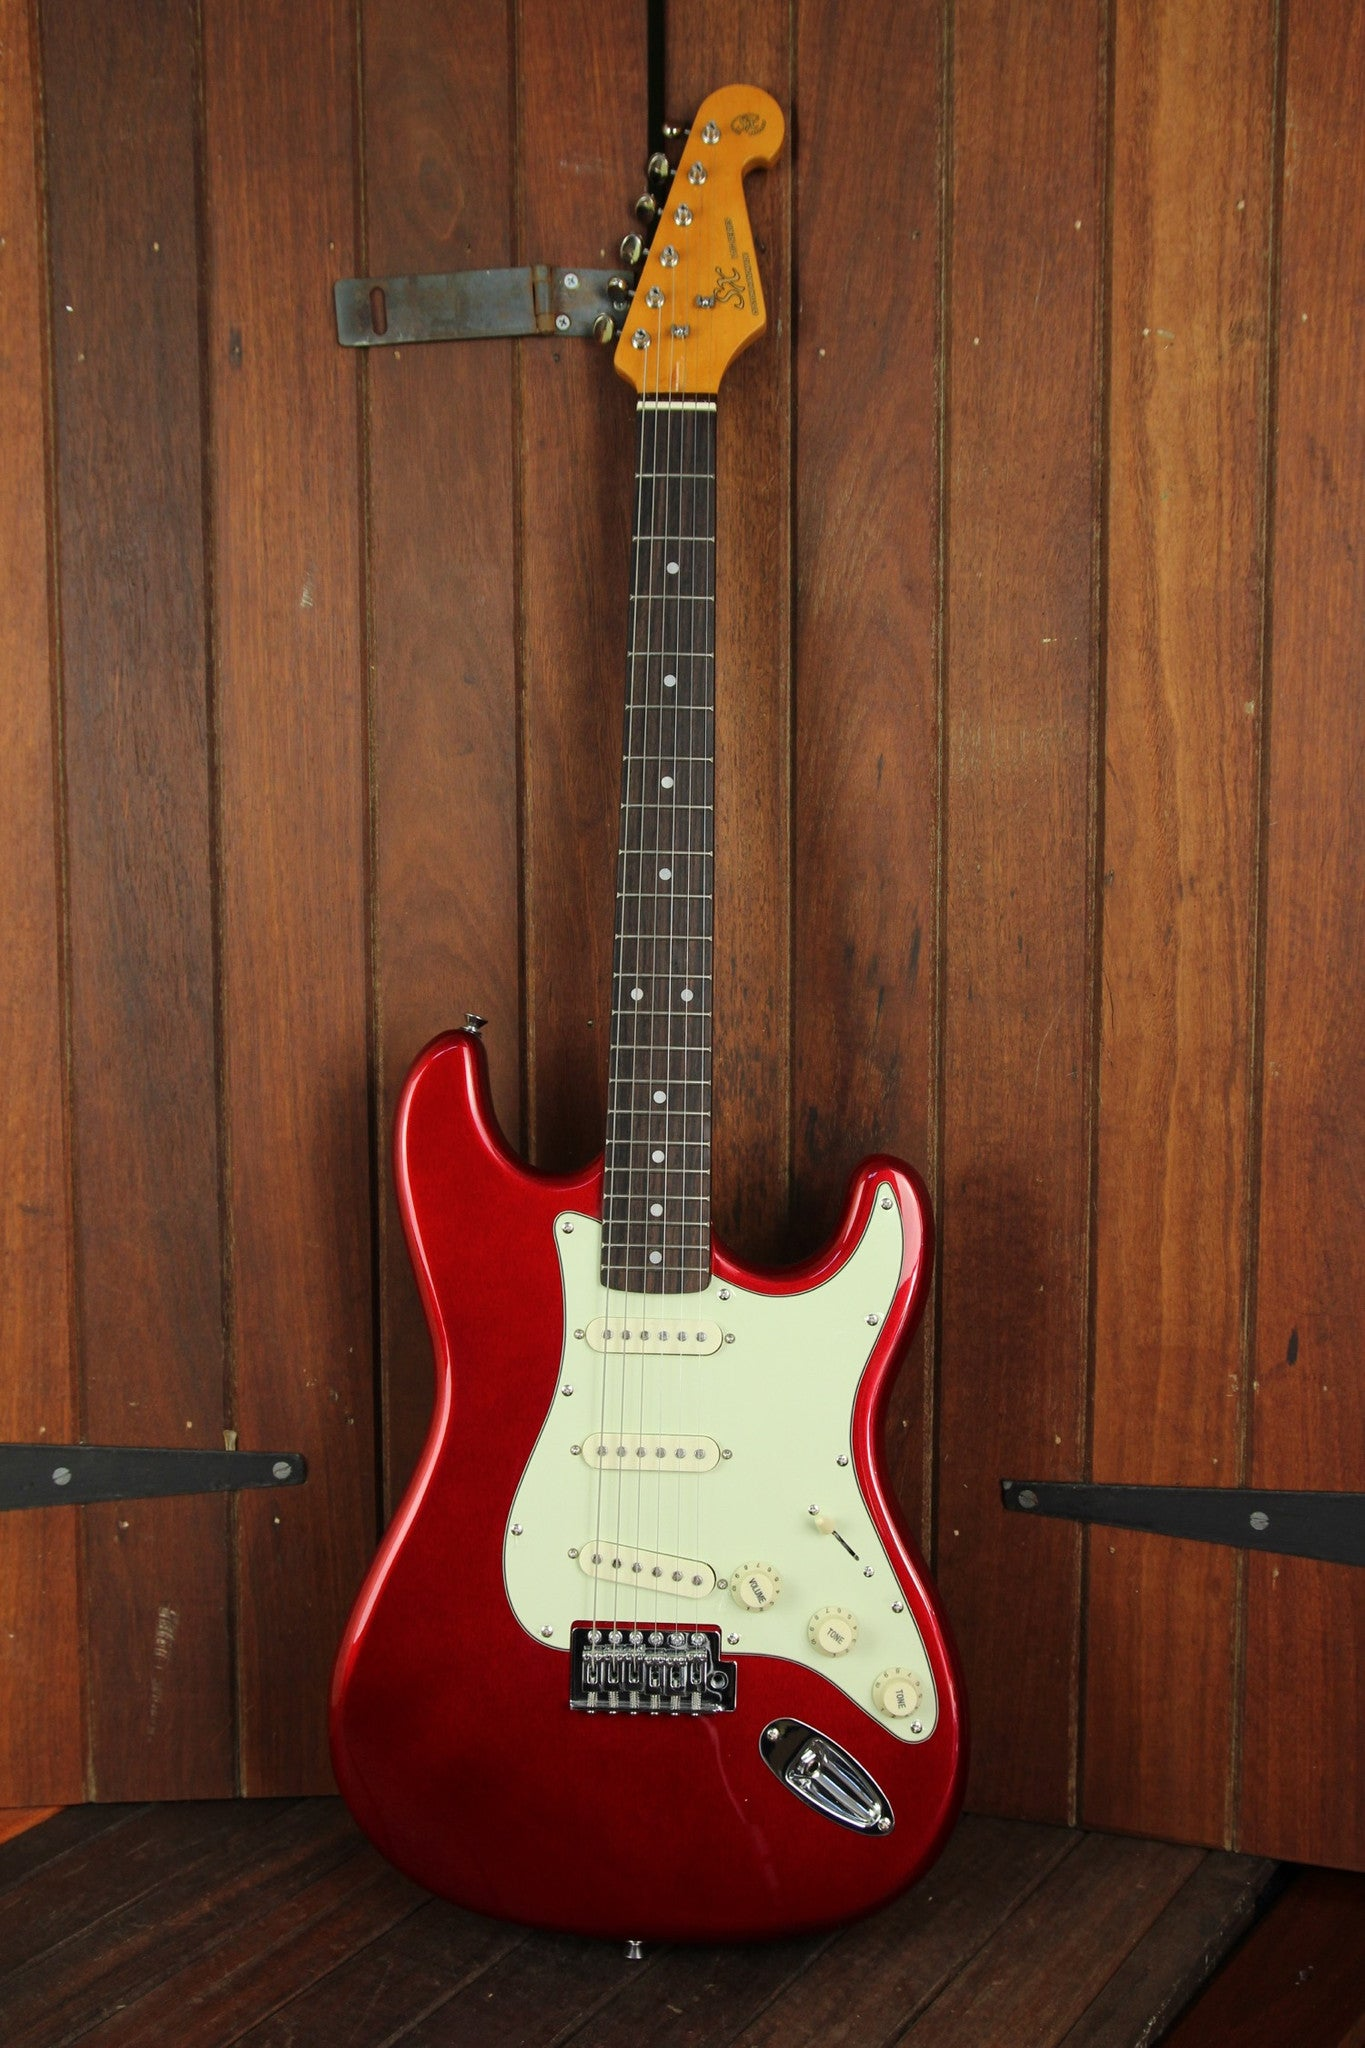 SX Vintage Style Electric Guitar Candy Apple Red - The Rock Inn - 2